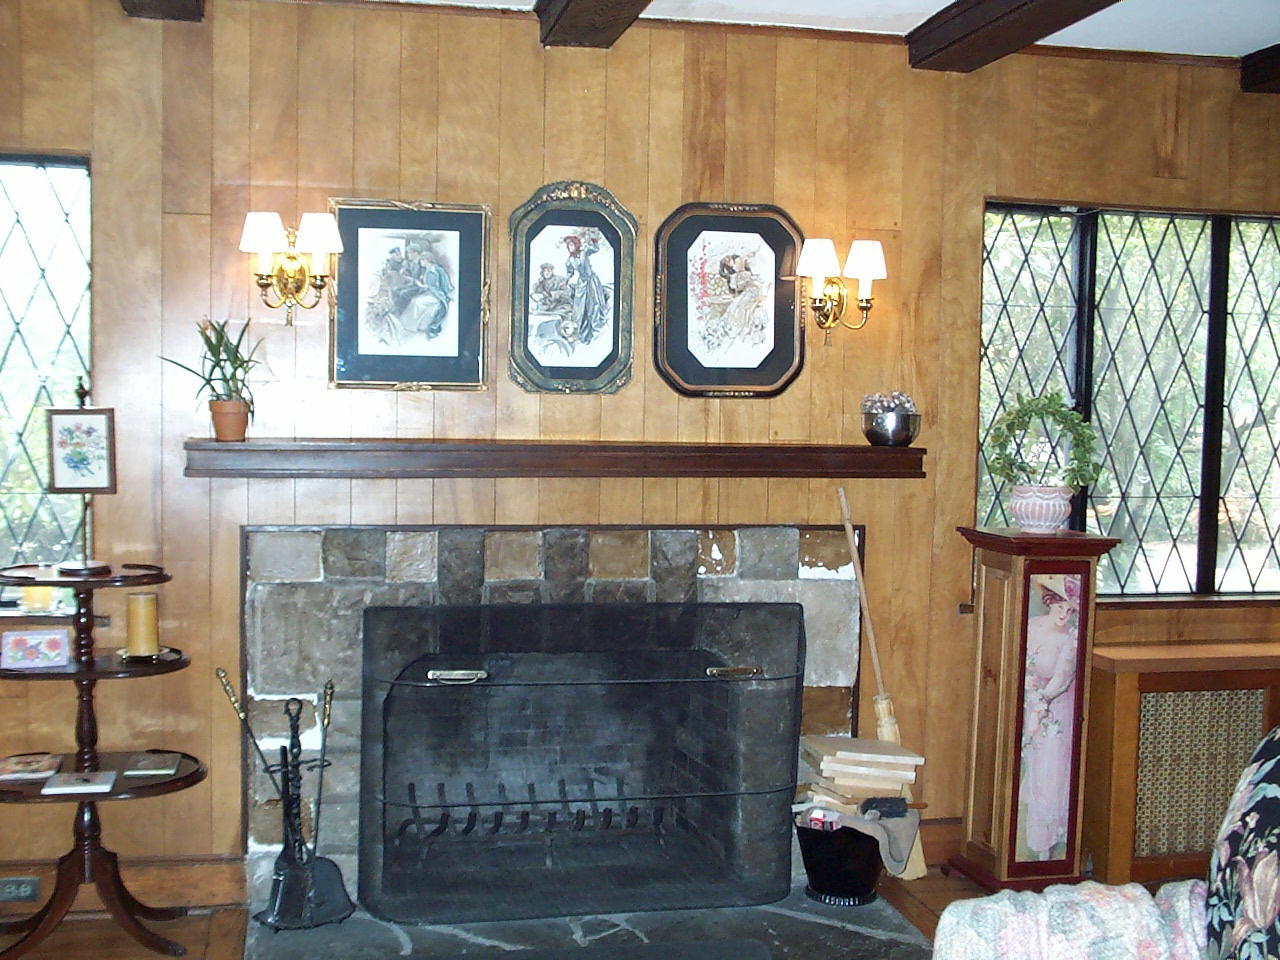 Living Room – Fireplace Mantel and Wood Radiator Covers